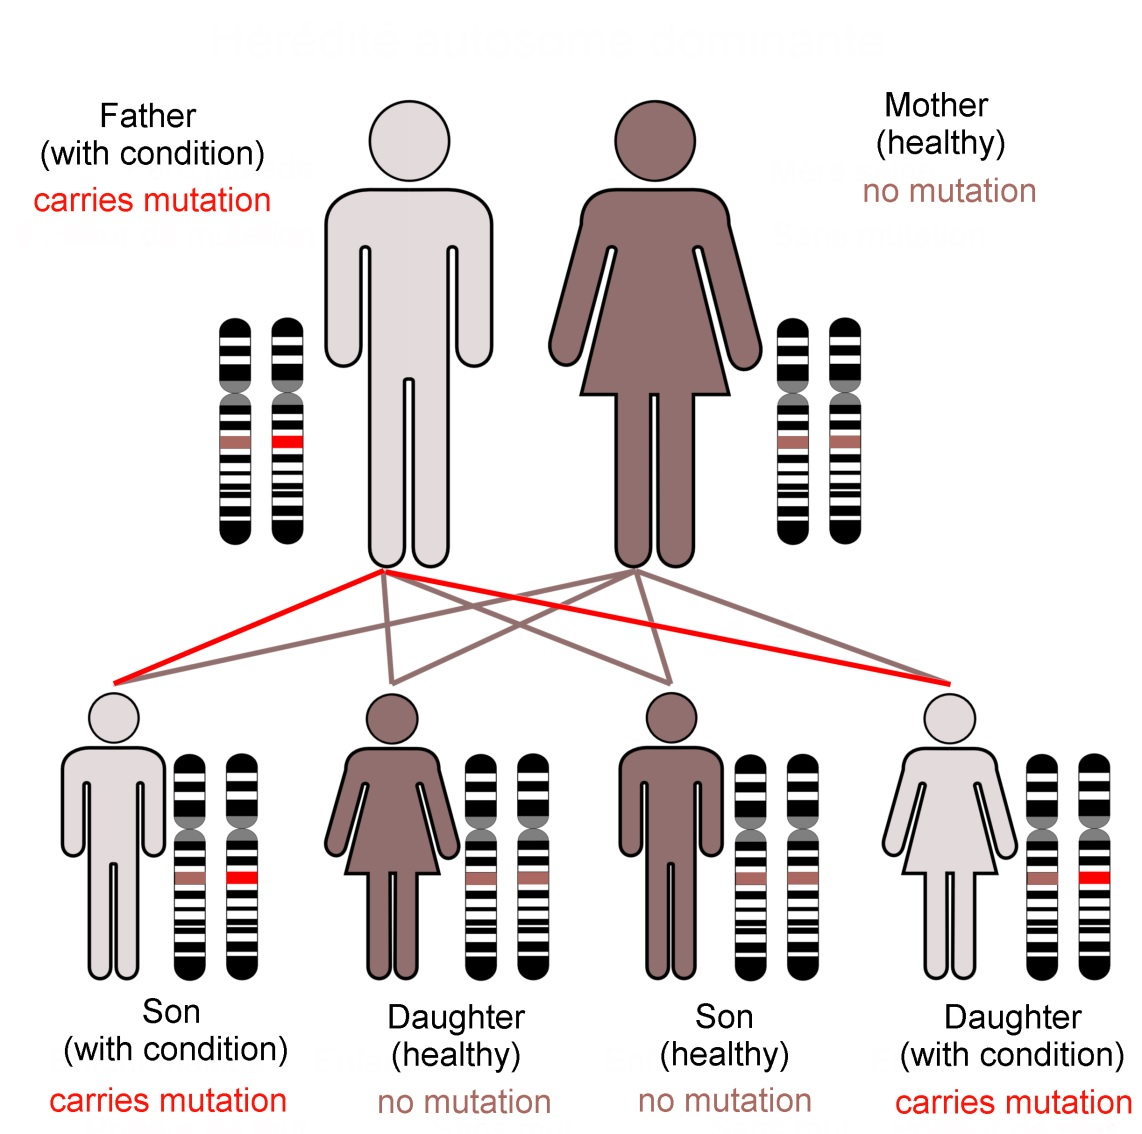 Family KE's condition, caused by a dominant mutation in the FoxP2 gene, follows an autosomal (not sex-linked) pattern of inheritance, as shown here.   Dominant mutations are visible when only one gene copy is present.  In contrast a recessive trait is not seen in the organism unless both chromosomes of the pair carry the mutant form of the gene.   The FoxP2 transcription factor protein is required in precise amounts for normal function of the brain.  The loss of one working FoxP2 gene copy reduces this 'dose' which is enough to cause the problems that emerged as family KE's symptoms (Image: Annotated from Wikimedia Commons)